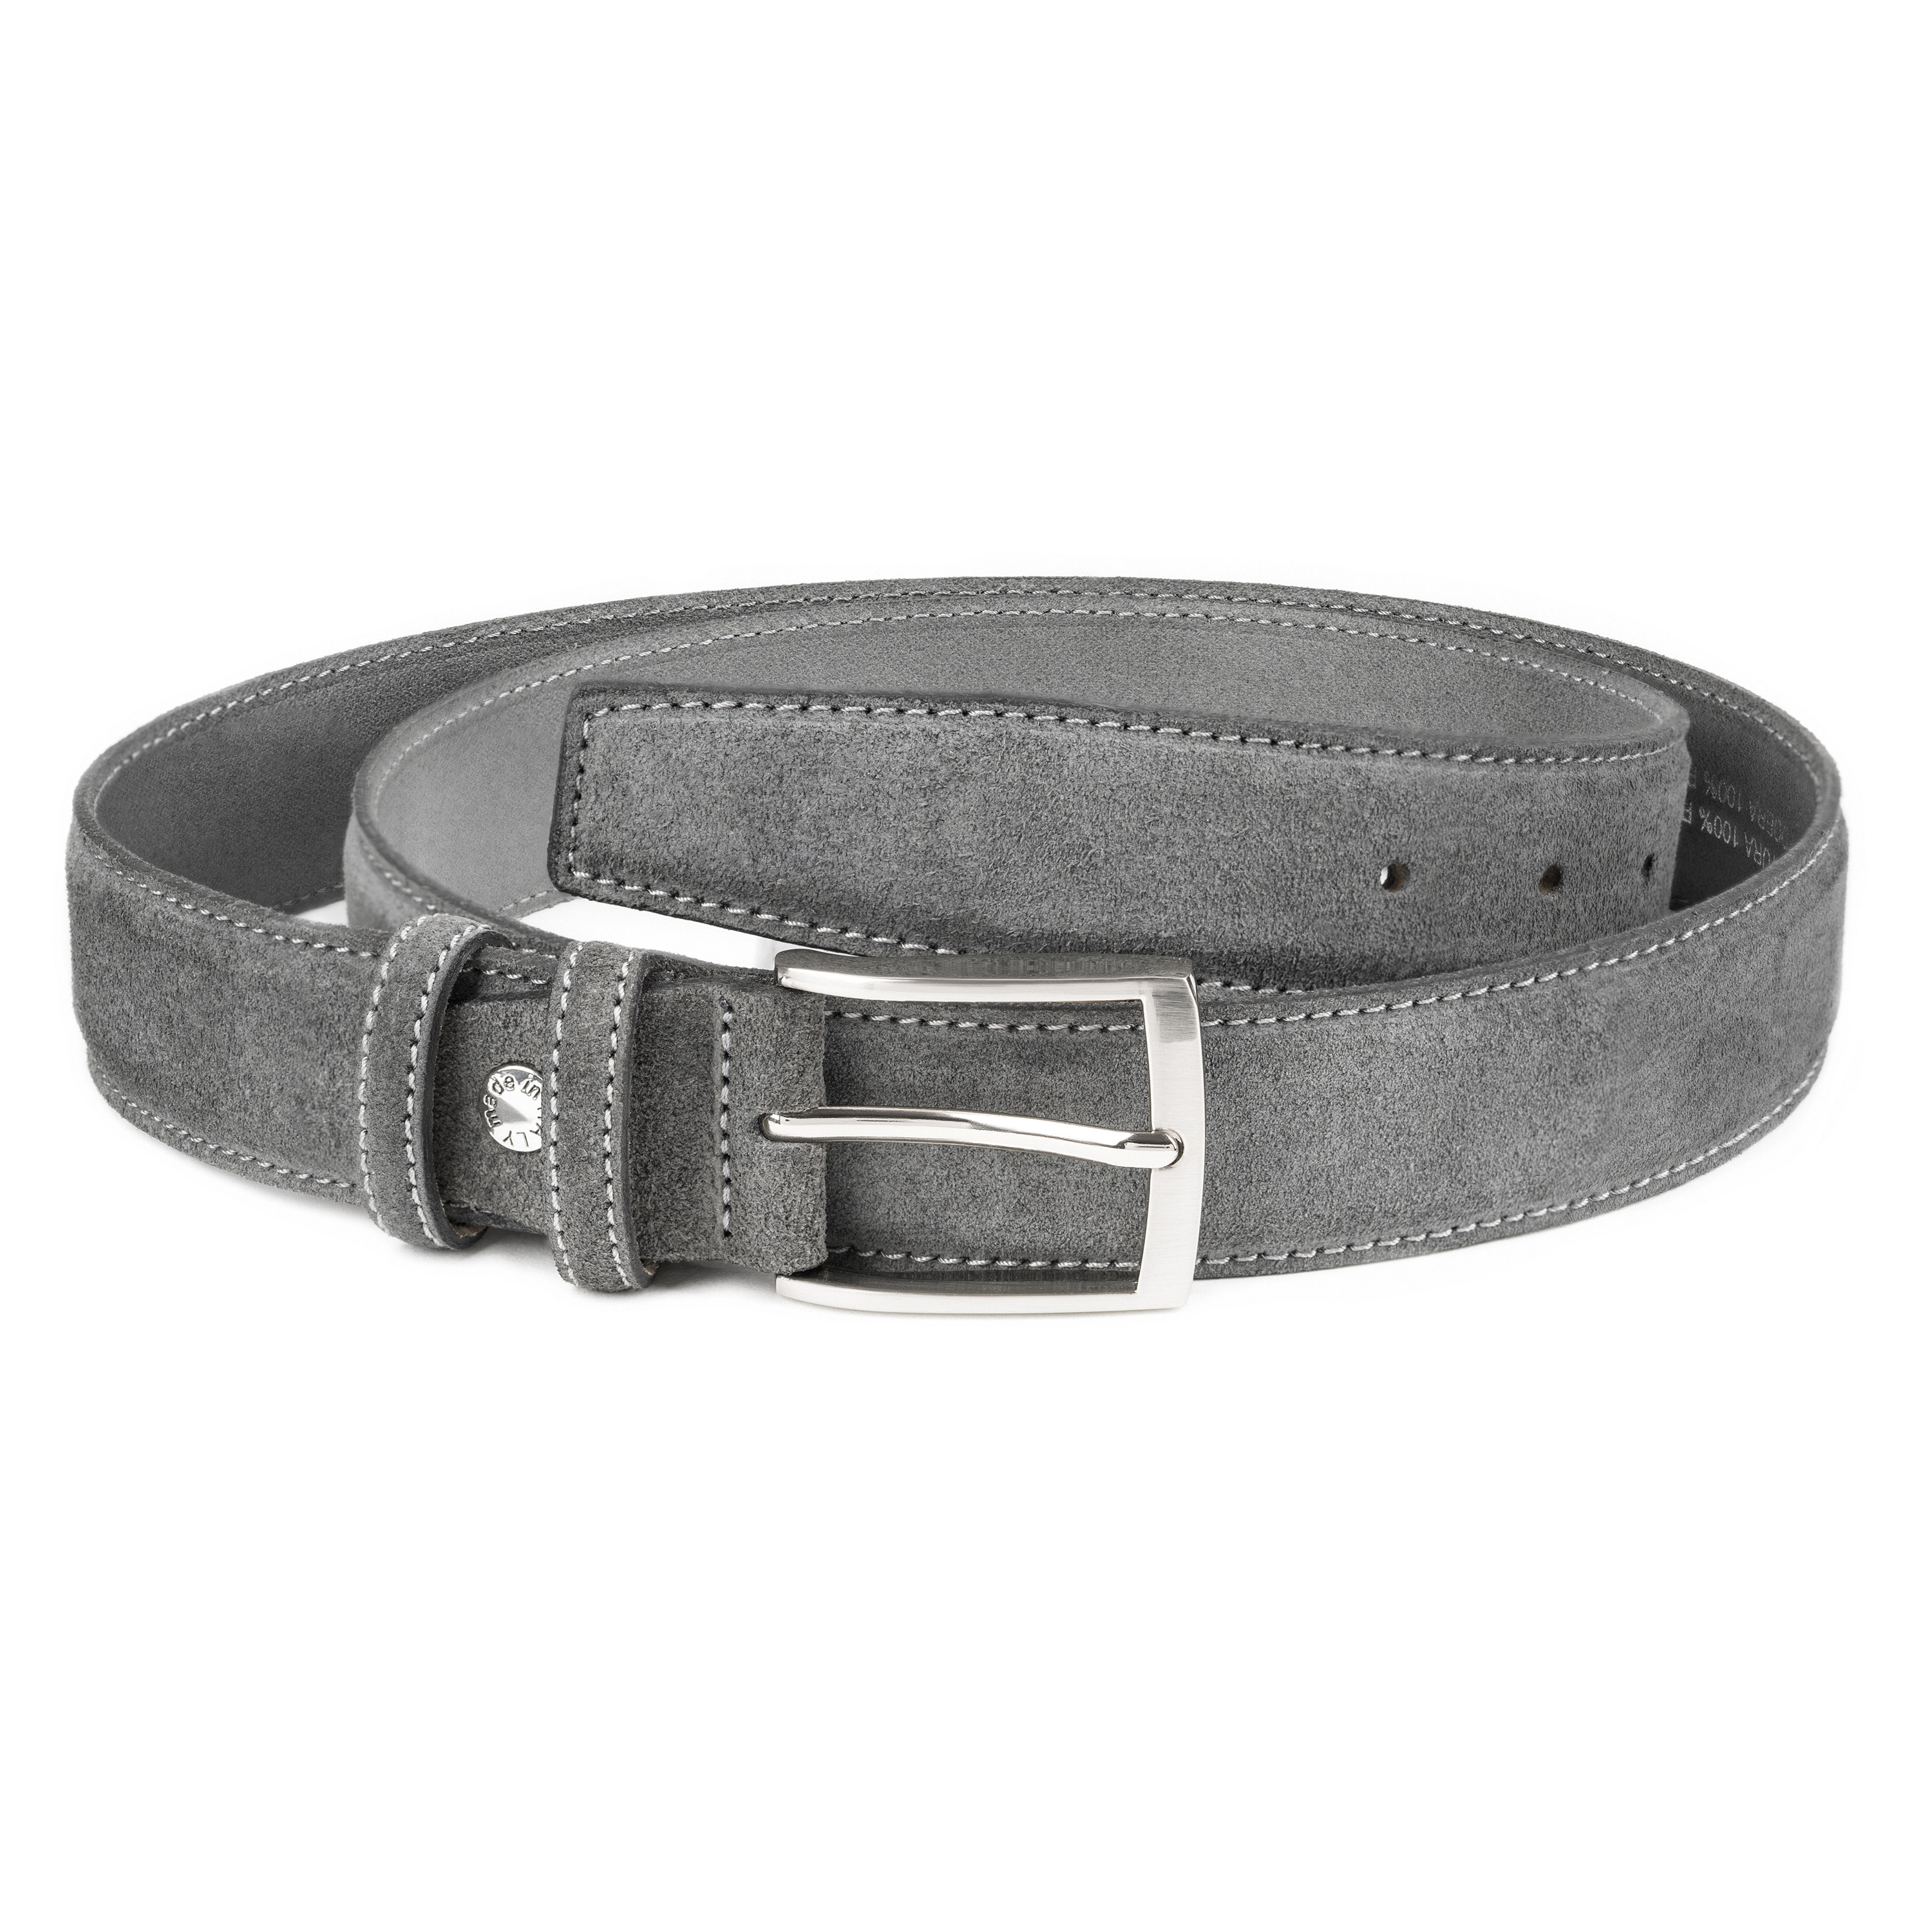 Details about Gray Suede Belt for Men Womens belts by Capo Pelle Italian  leather Casual Jeans 2f767a87f